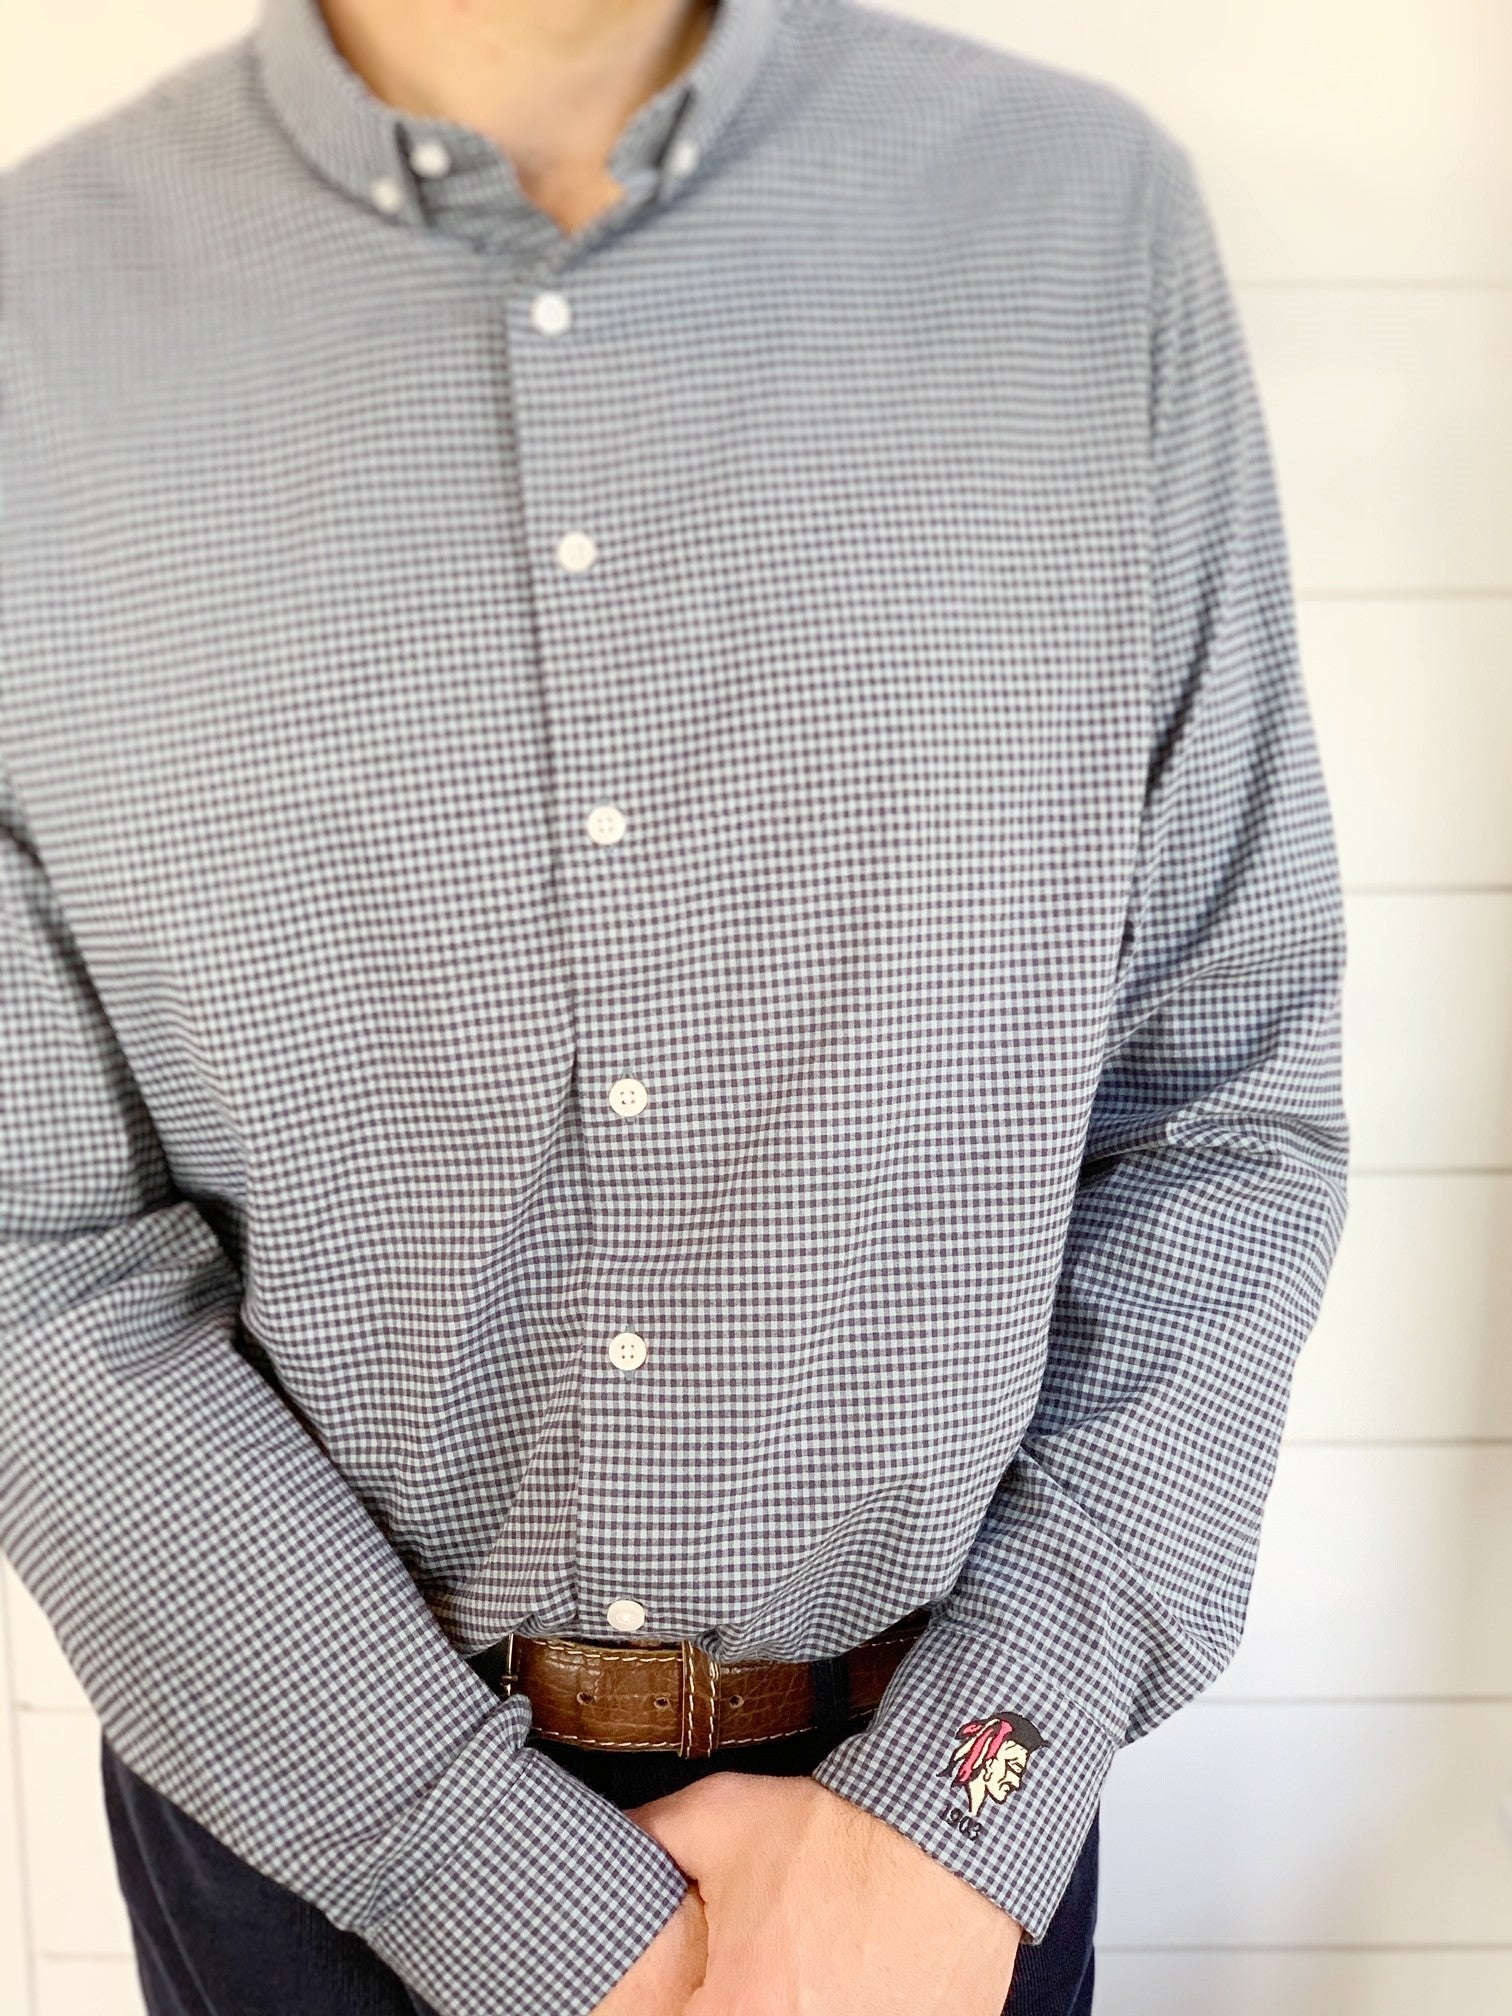 Button Down Gingham Print Dress Shirt by TASC